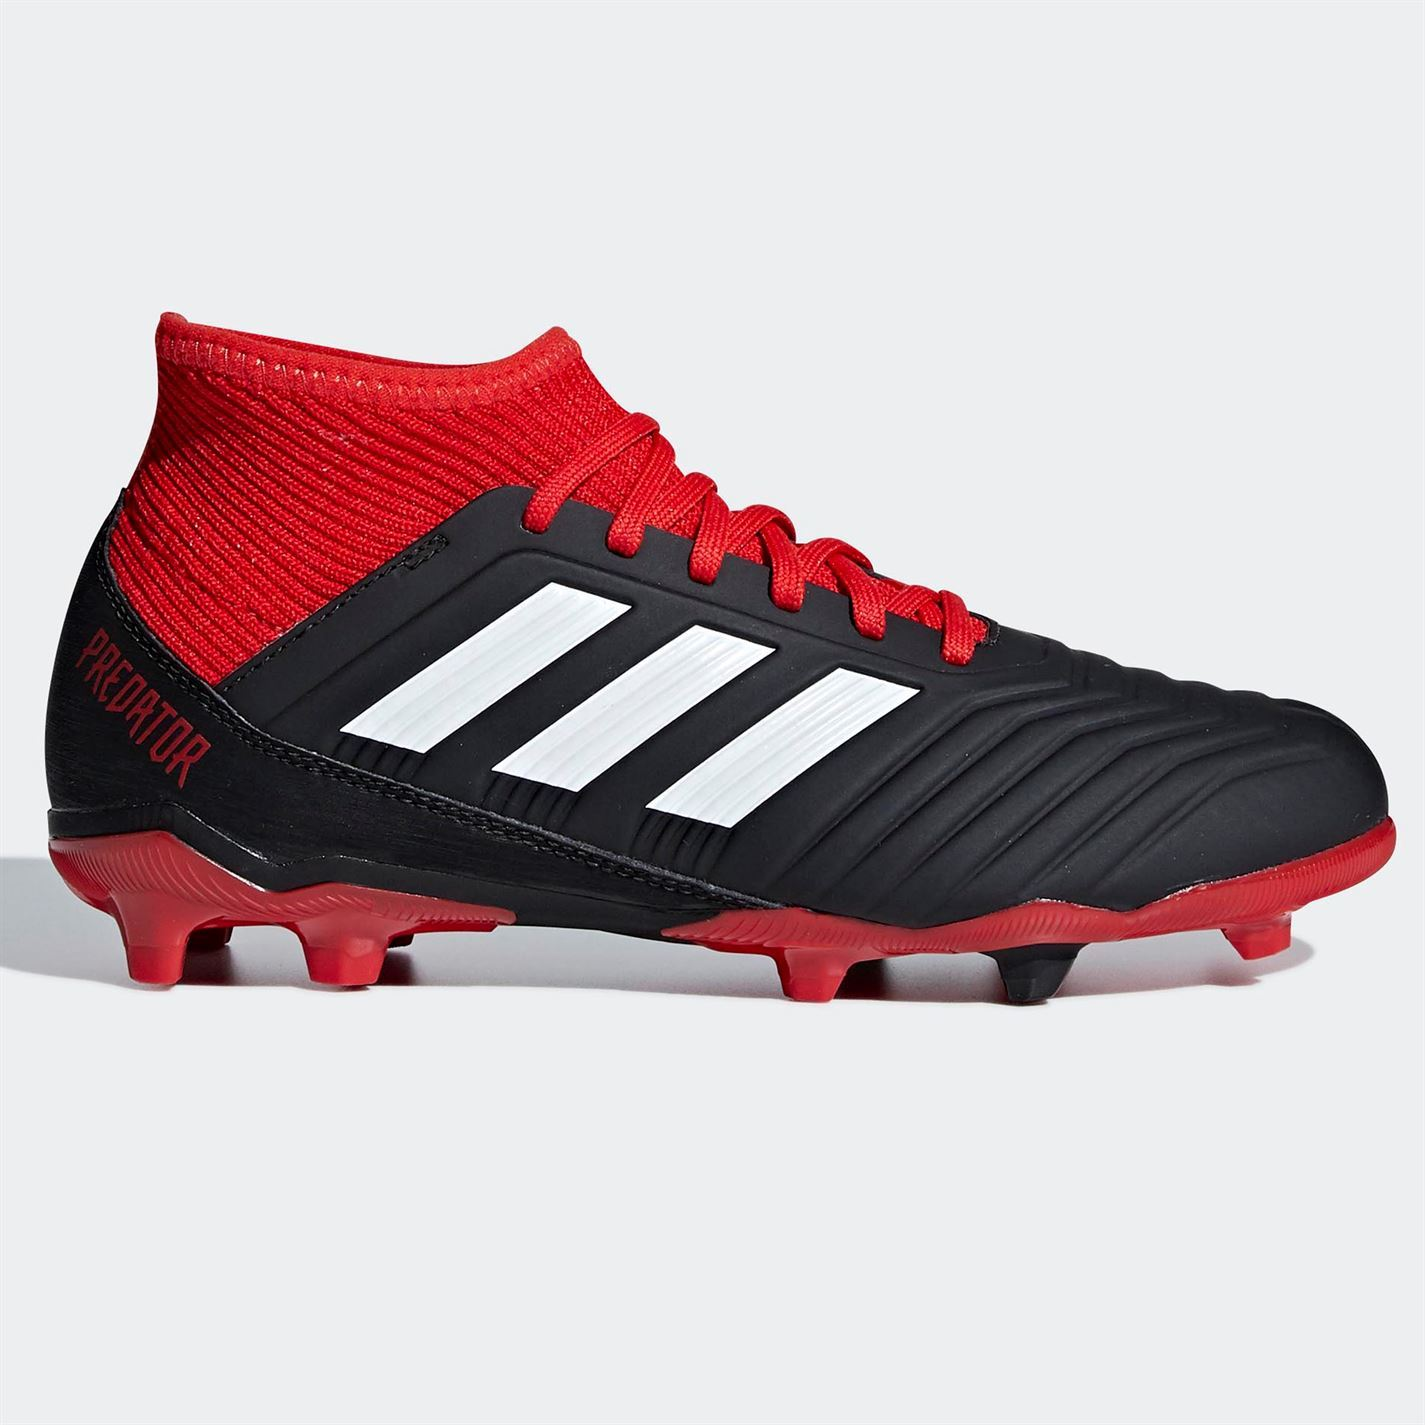 9415a260b84 ... adidas Predator 18.3 FG Firm Ground Football Boots Childs Soccer Shoes  Cleats